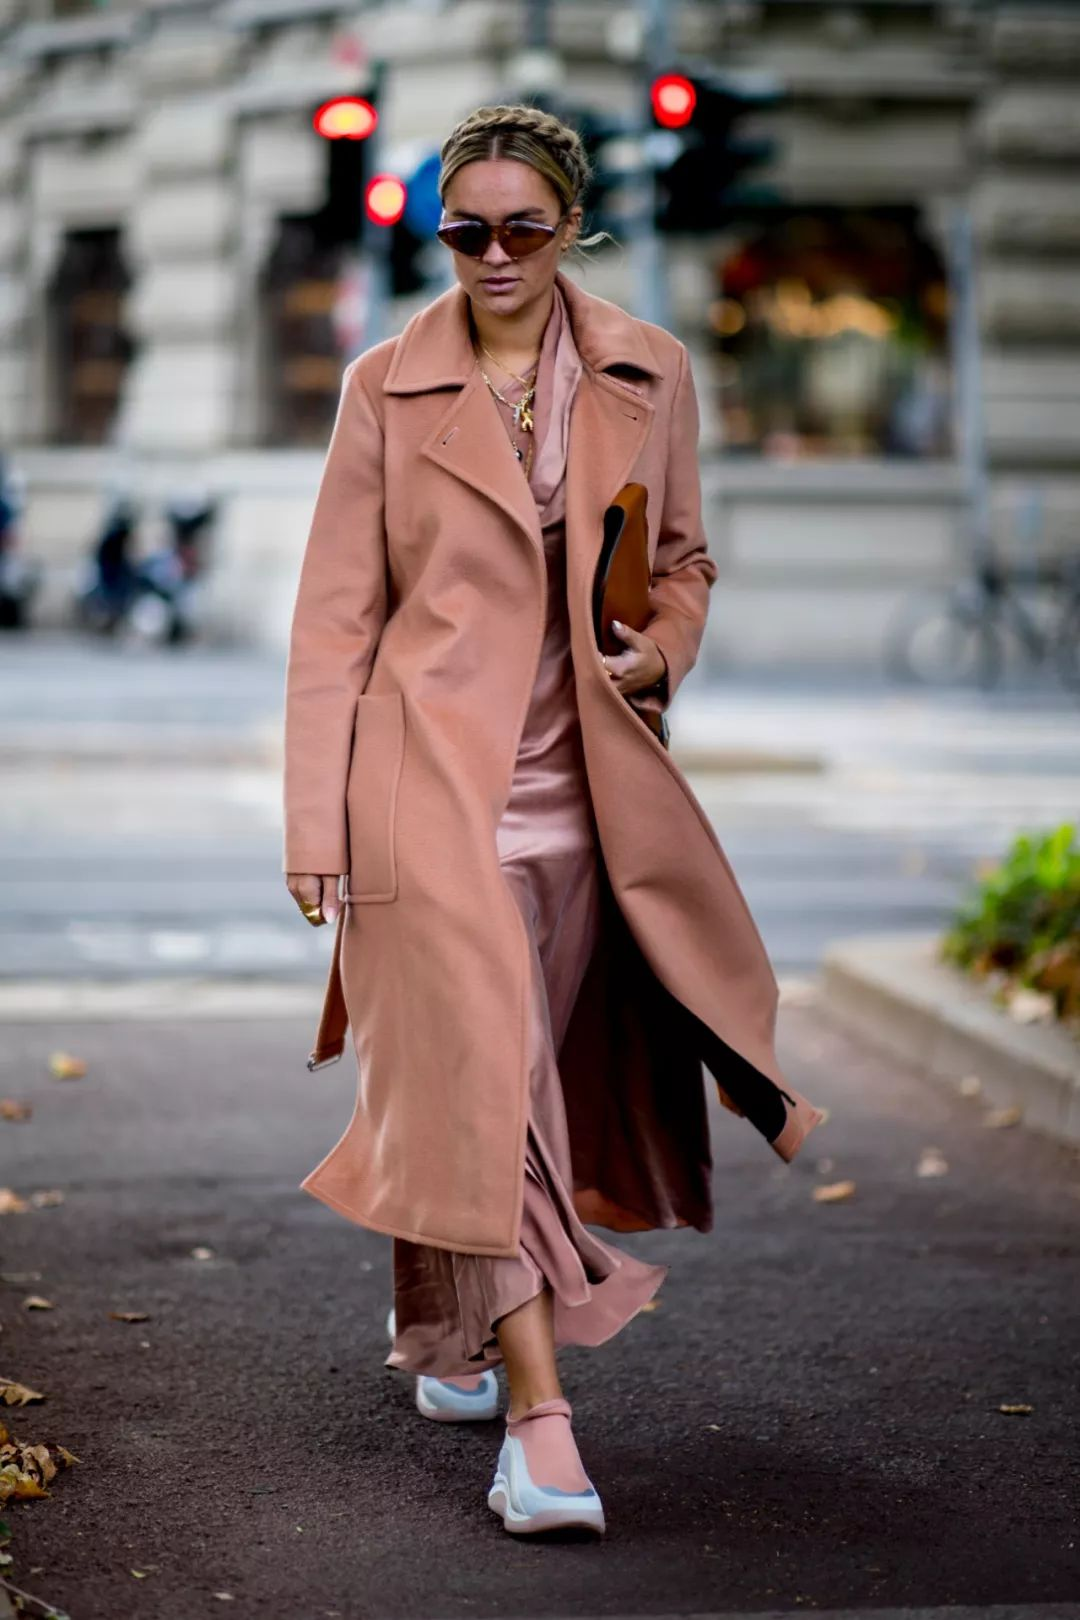 Still Wearing A Camel Coat? It's Time To Change Your Classy Coat In Spring 2020!